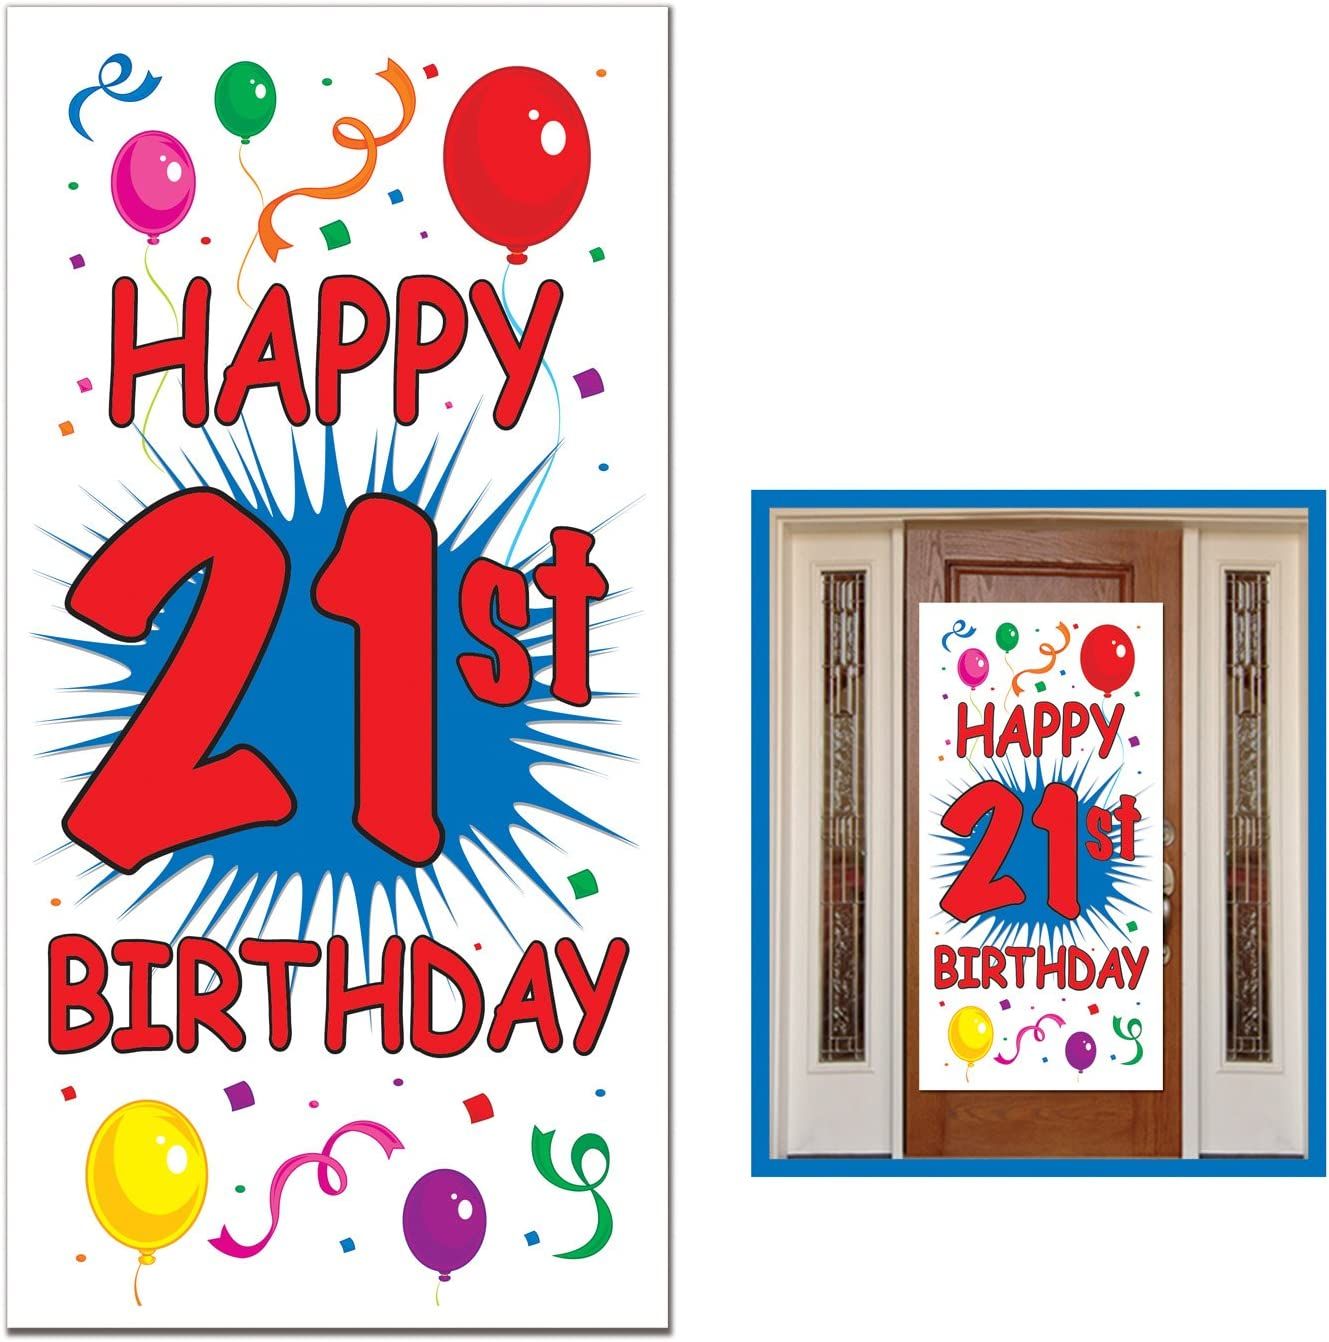 1 count 1//Pkg 21st Birthday Door Cover Party Accessory